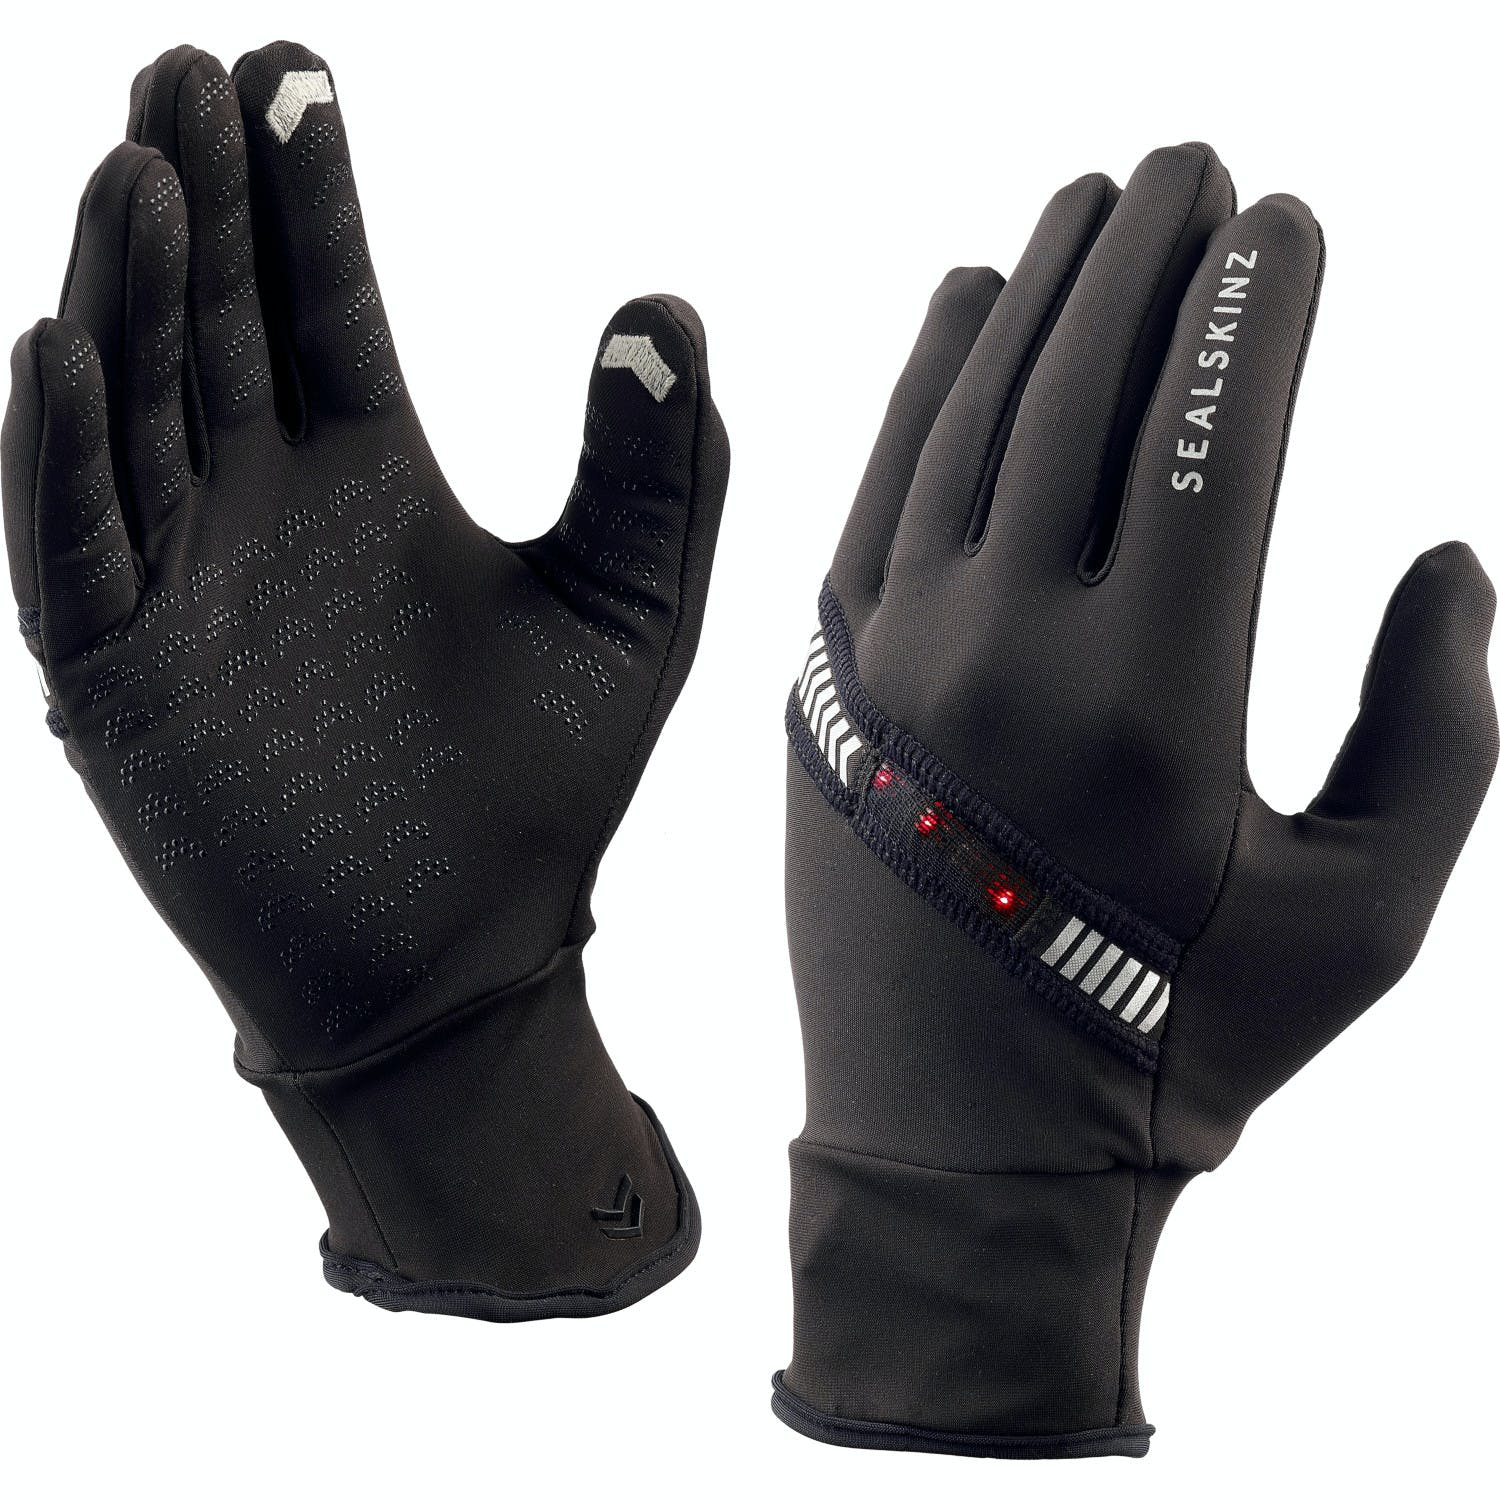 Sealskinz Halo Running Gloves From Nightgear Uk